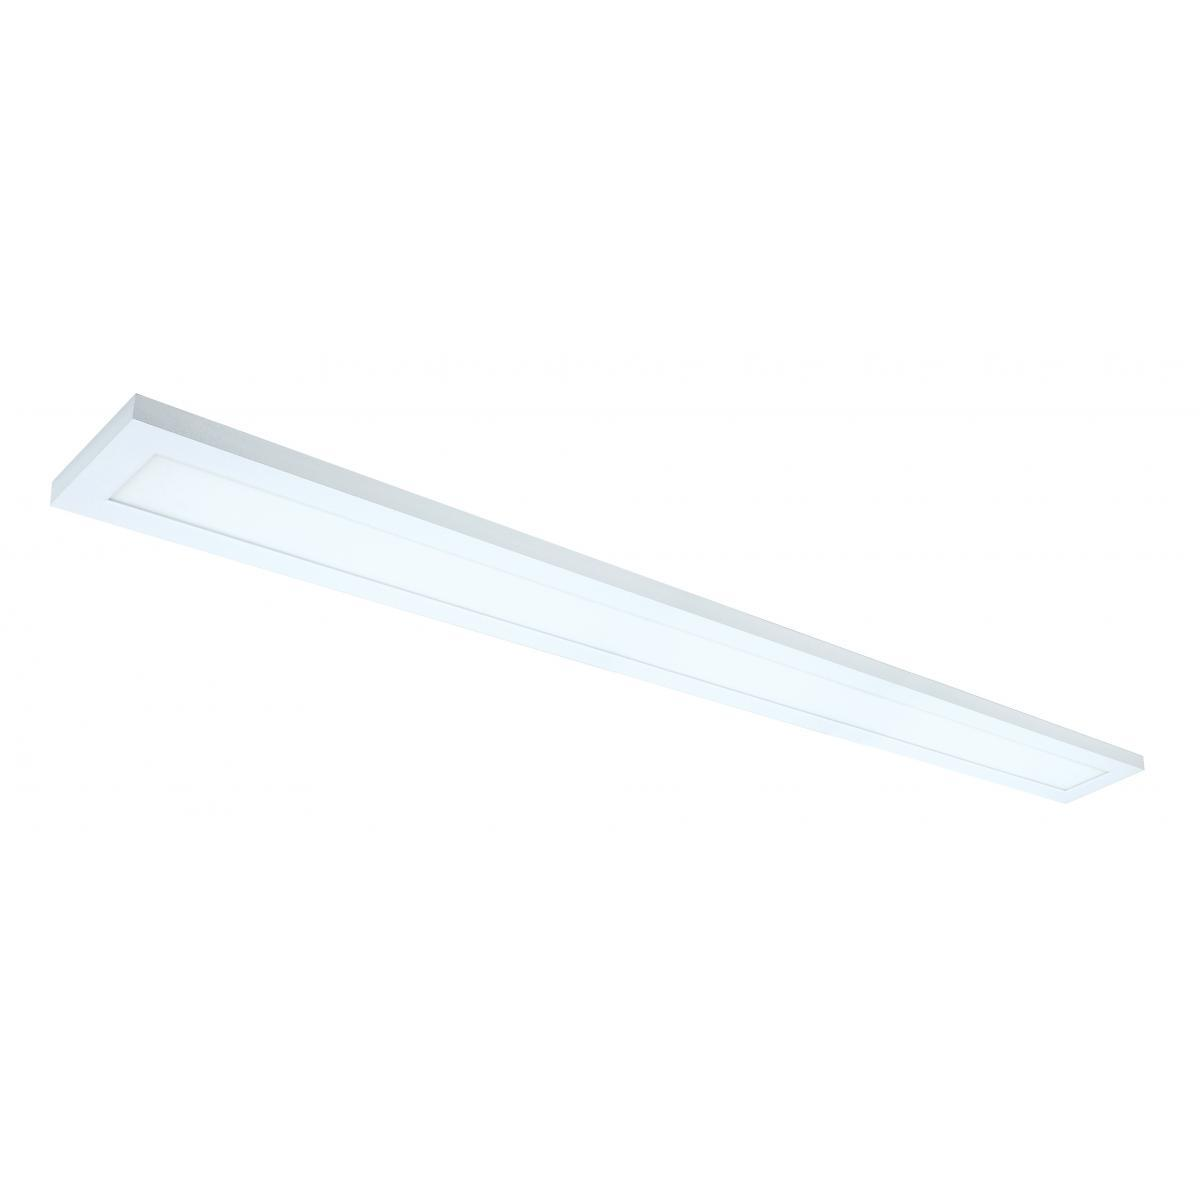 "40 Watt 5"" x 48"" Surface Mount LED Fixture 5000K 80 CRI Low Profile White Finish 120/277 Volts Ceiling Nuvo Lighting"